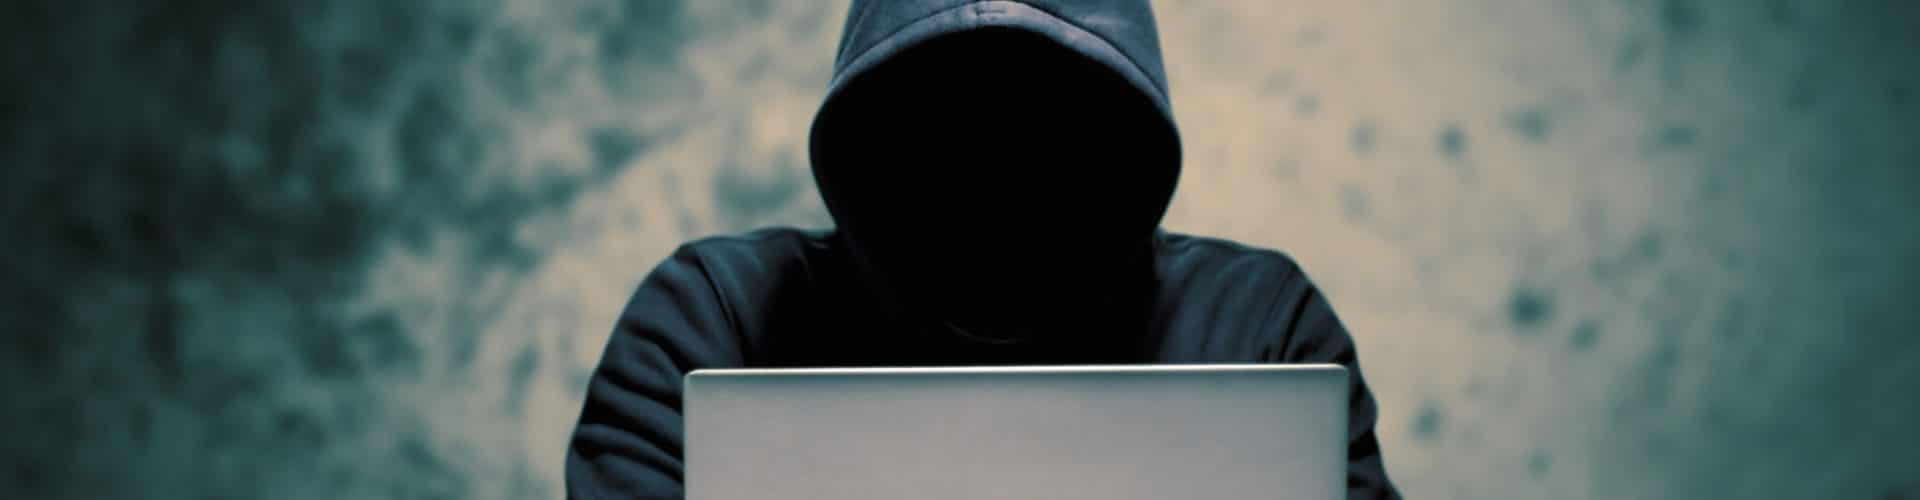 Hackers with computer data theft in the social world.